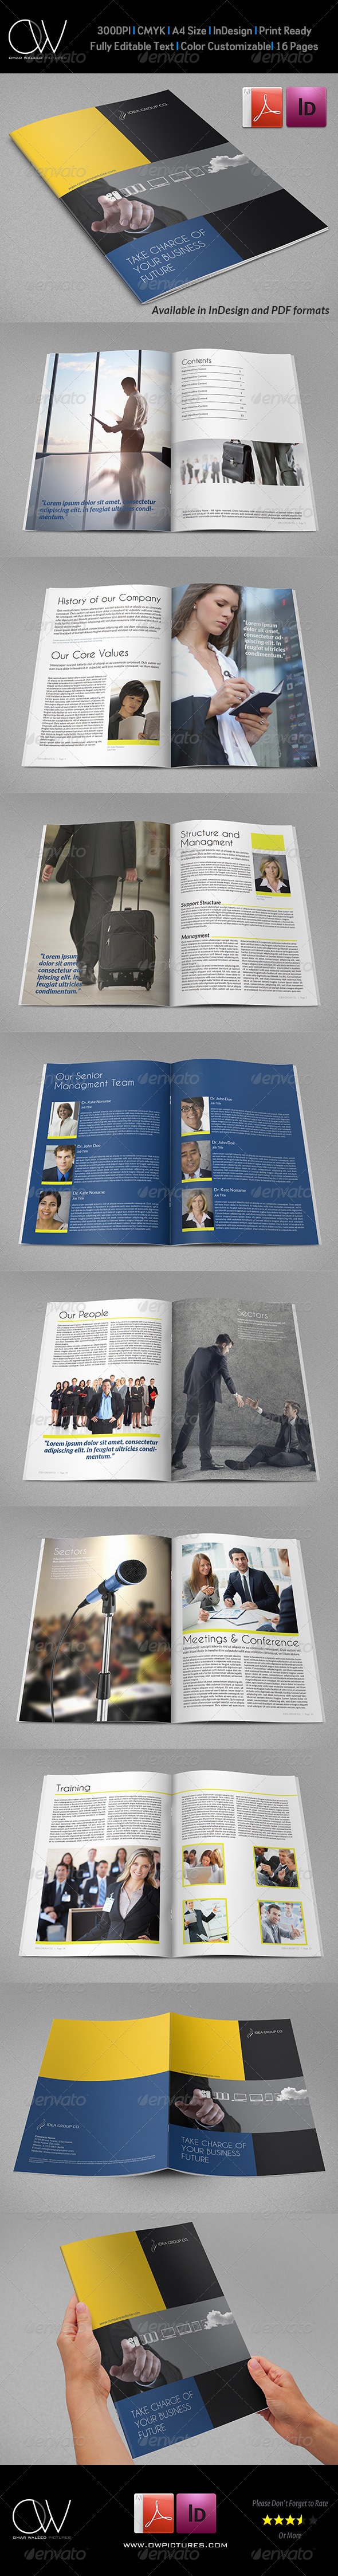 GraphicRiver Corporate Brochure Template Vol.26 16 Pages 6884747